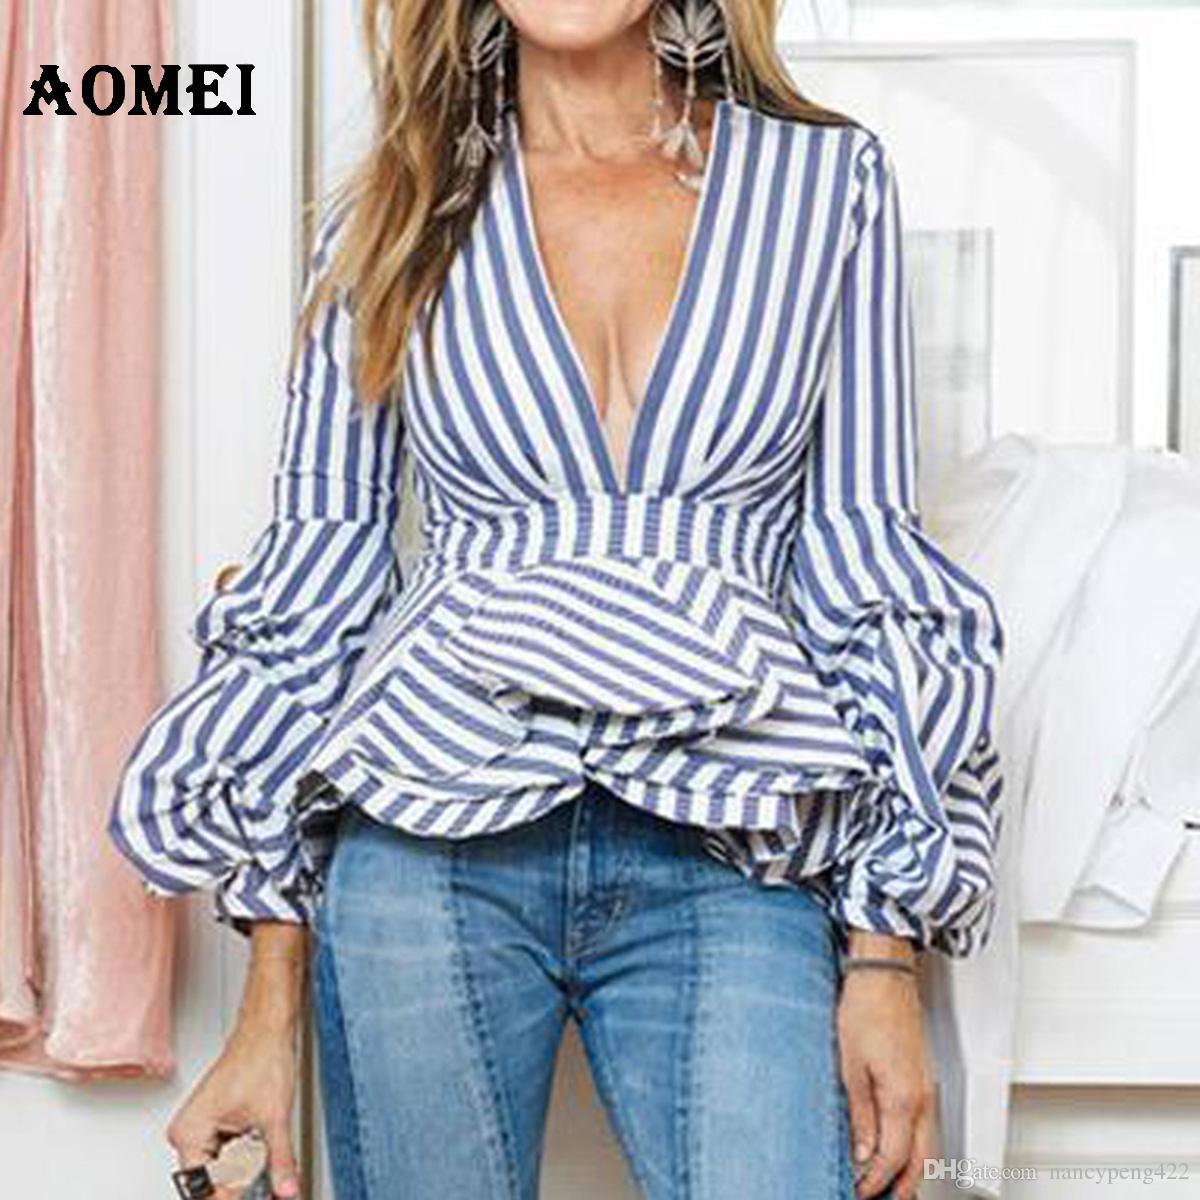 Find great deals on eBay for blue and white blouse. Shop with confidence.